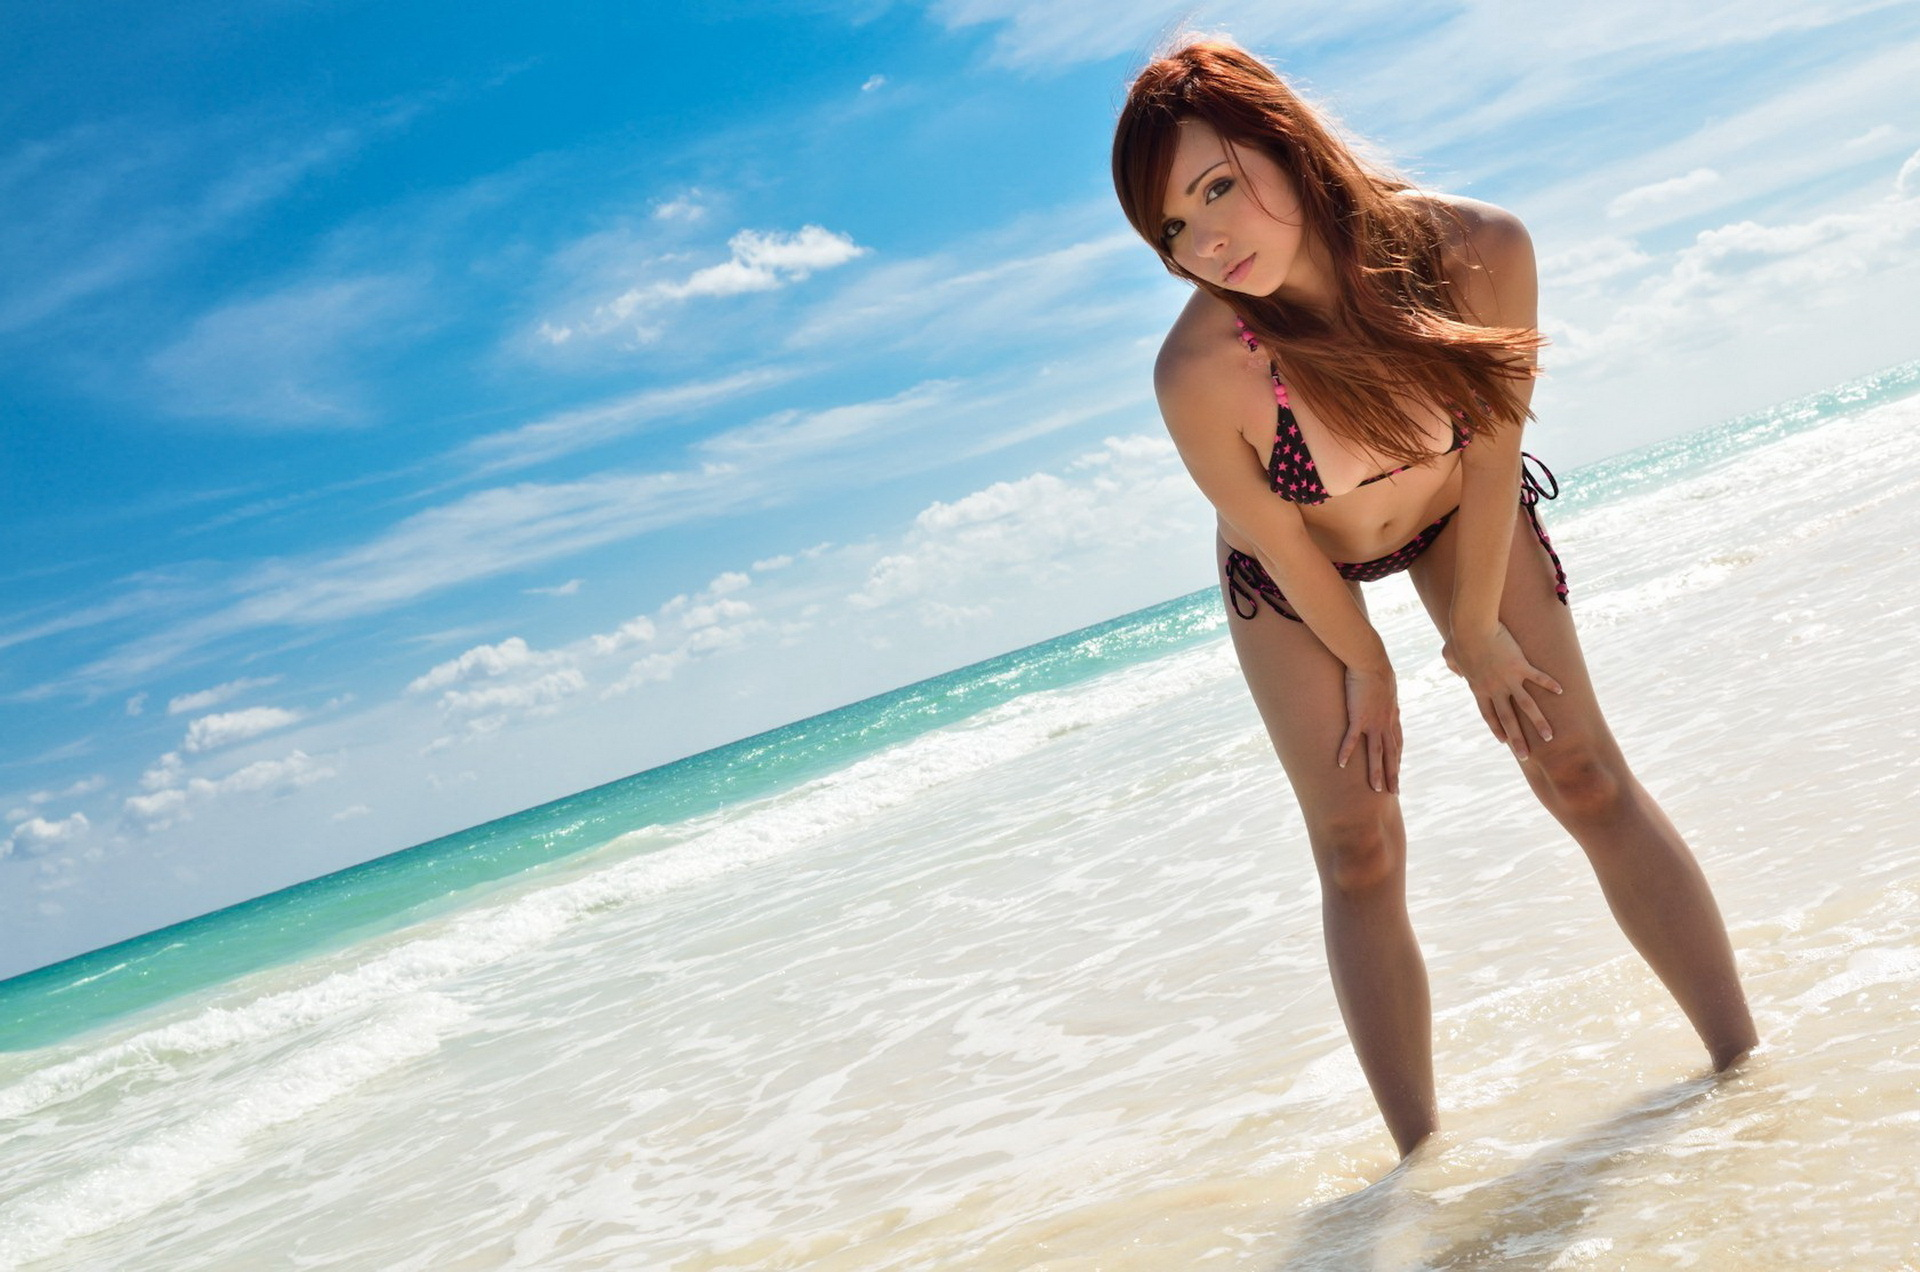 18 Year old girl poses totally nude on a deserted sandy beach № 273281  скачать